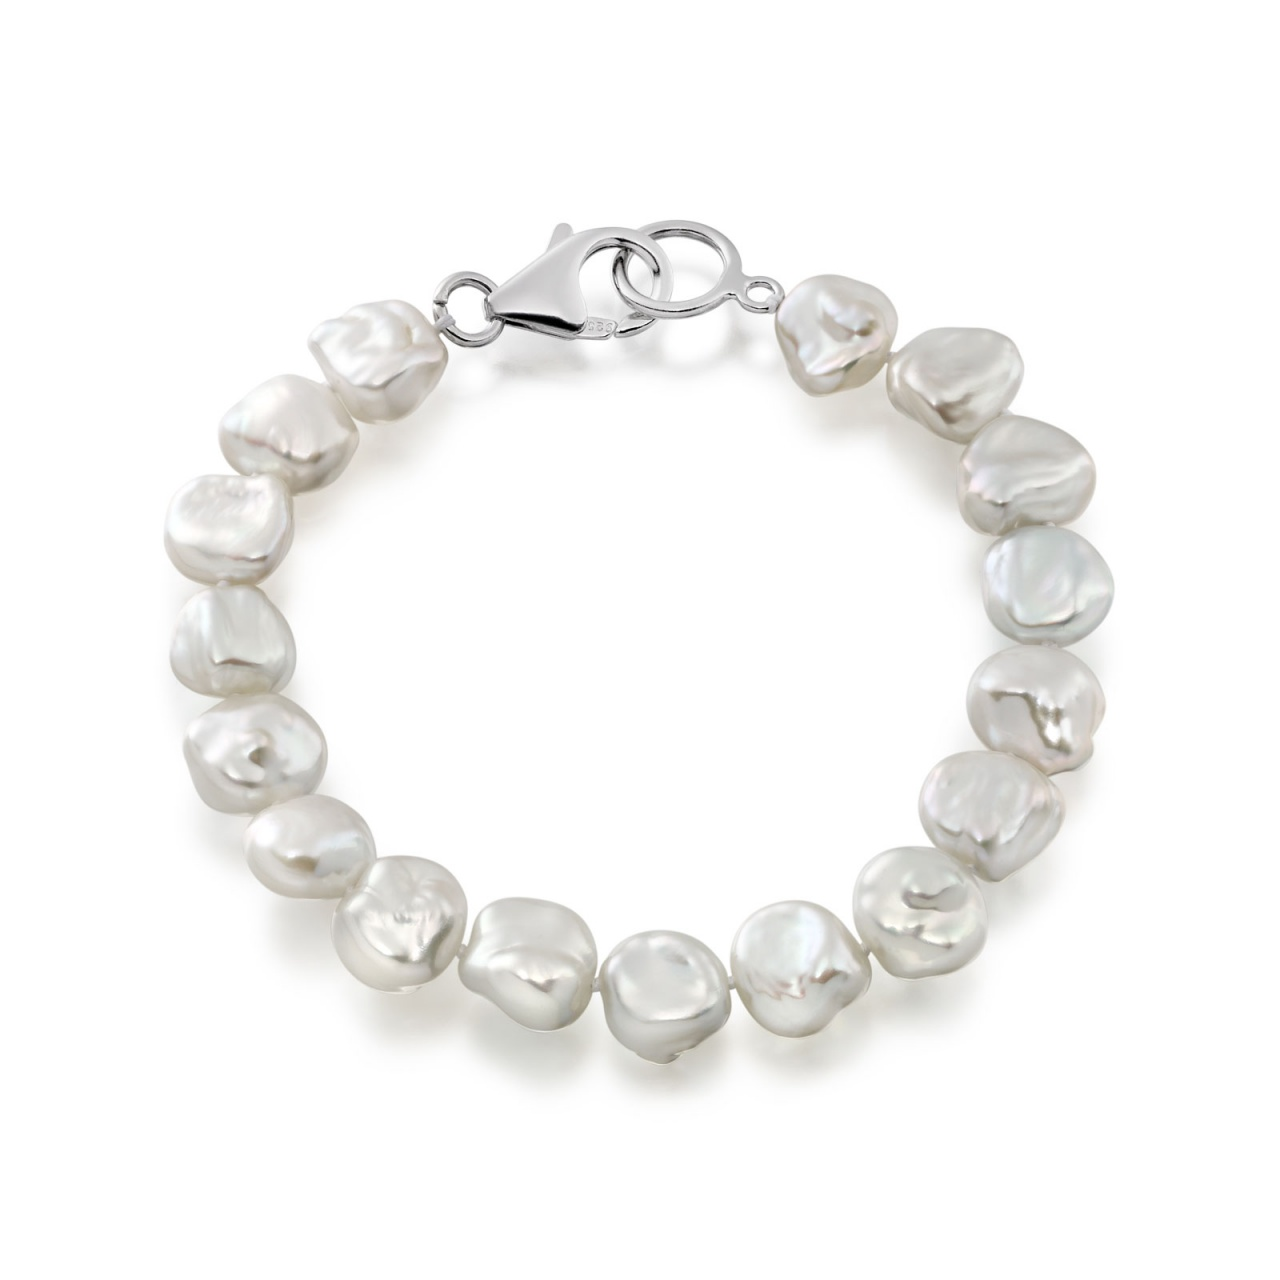 White Keshi Freshwater Pearl Bracelet with Sterling Silver-1